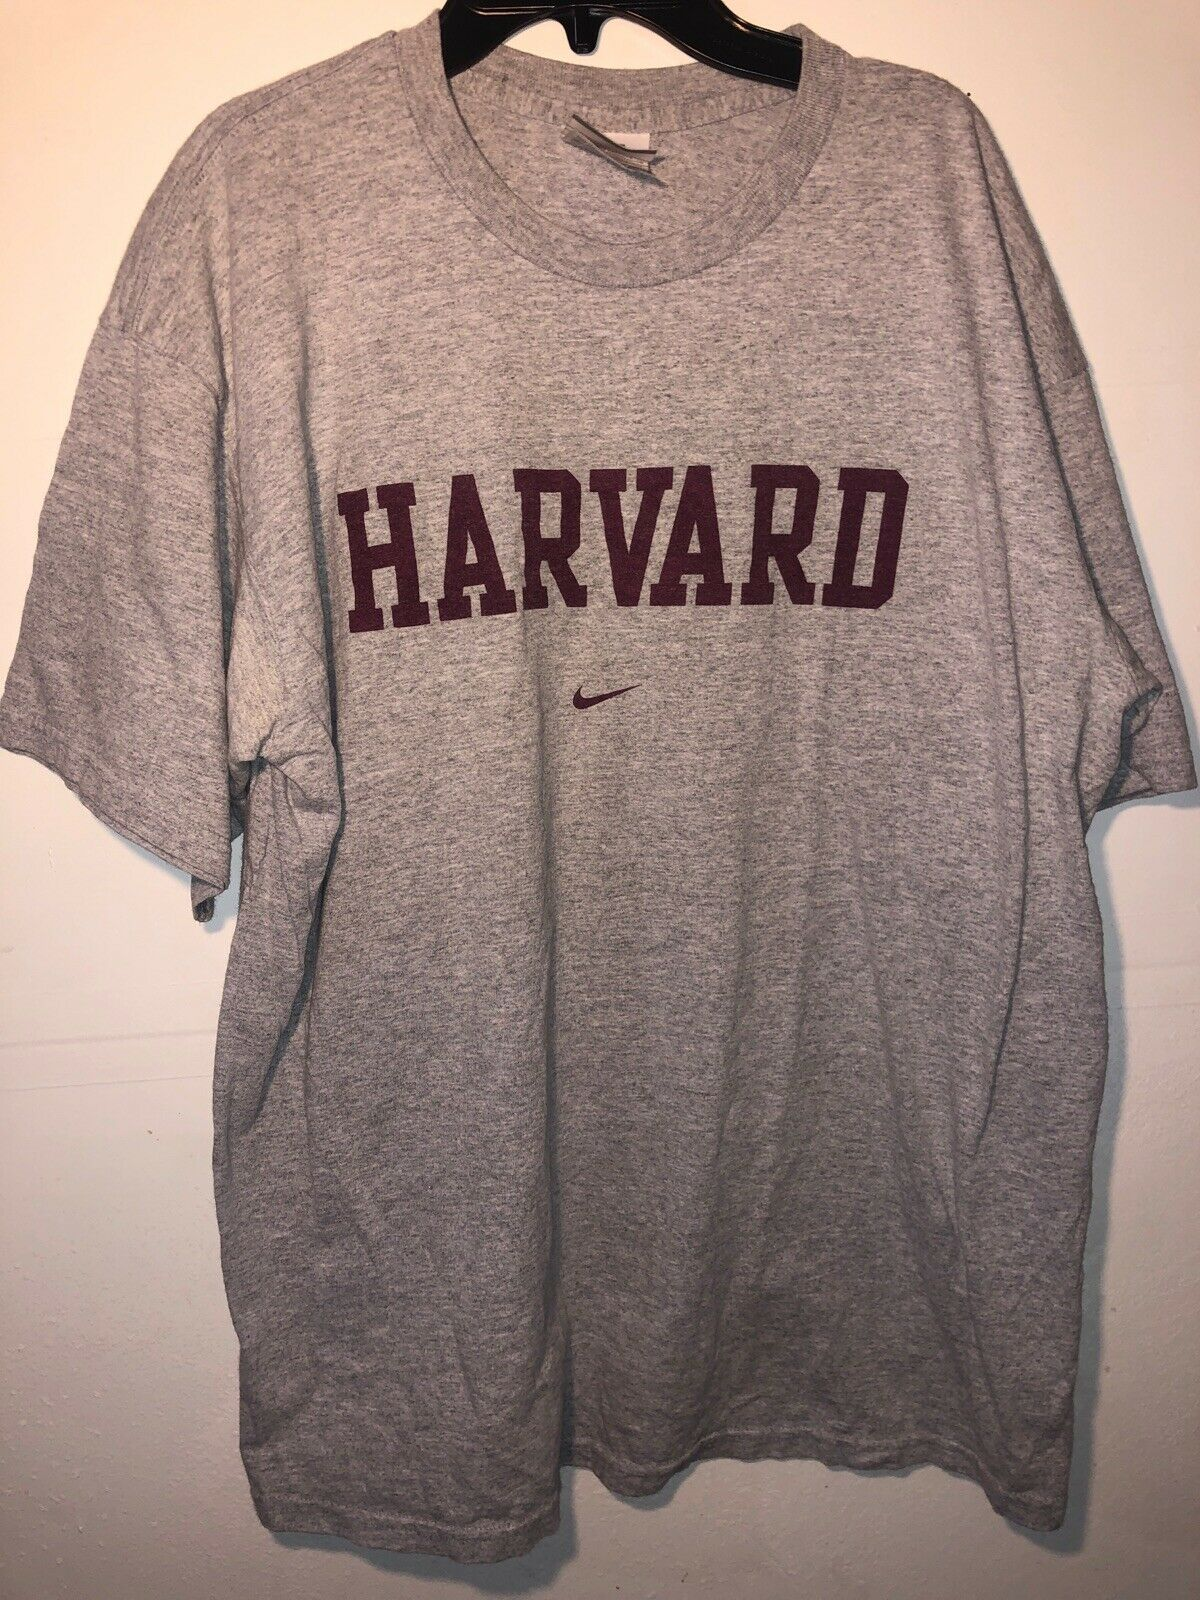 HARVARD UNIVERSITY VINTAGE 90s GRAY COLLEGE SEAL SWEATSHIRT SMALL 1